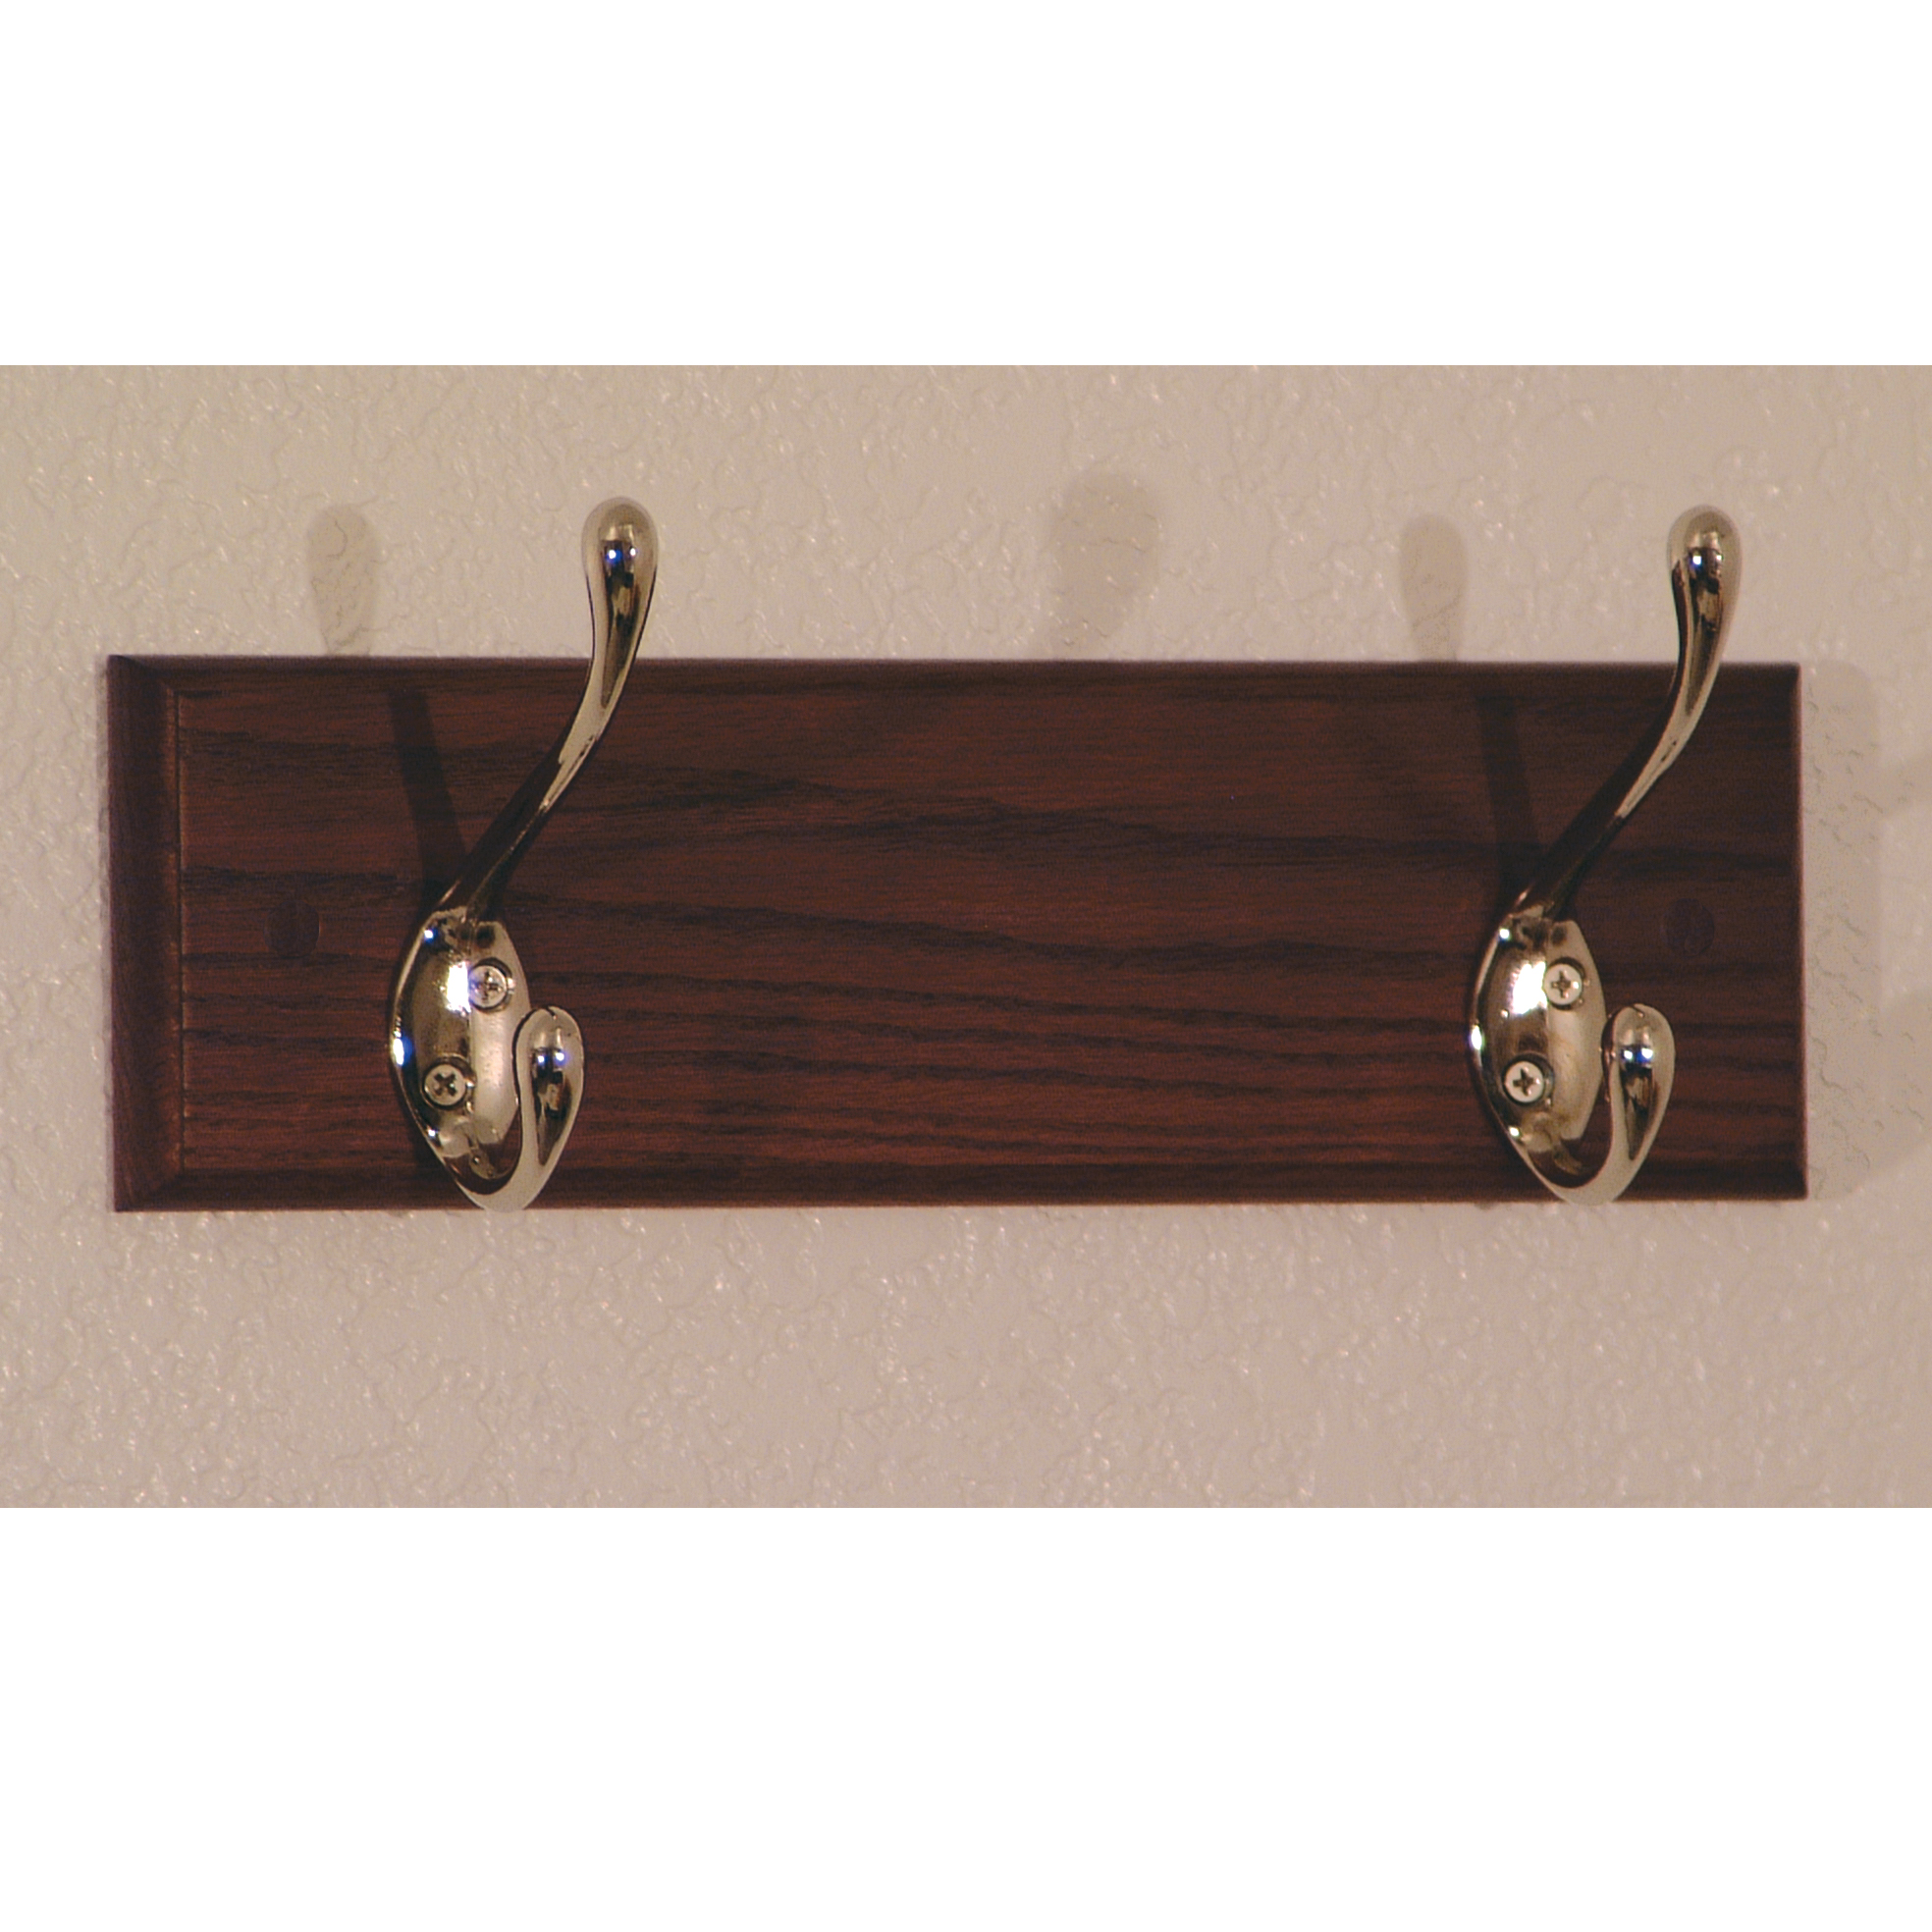 Wooden Hooks Oak Wood Coat Rack Coat Hanger Hat Hanger Wall Mount Door